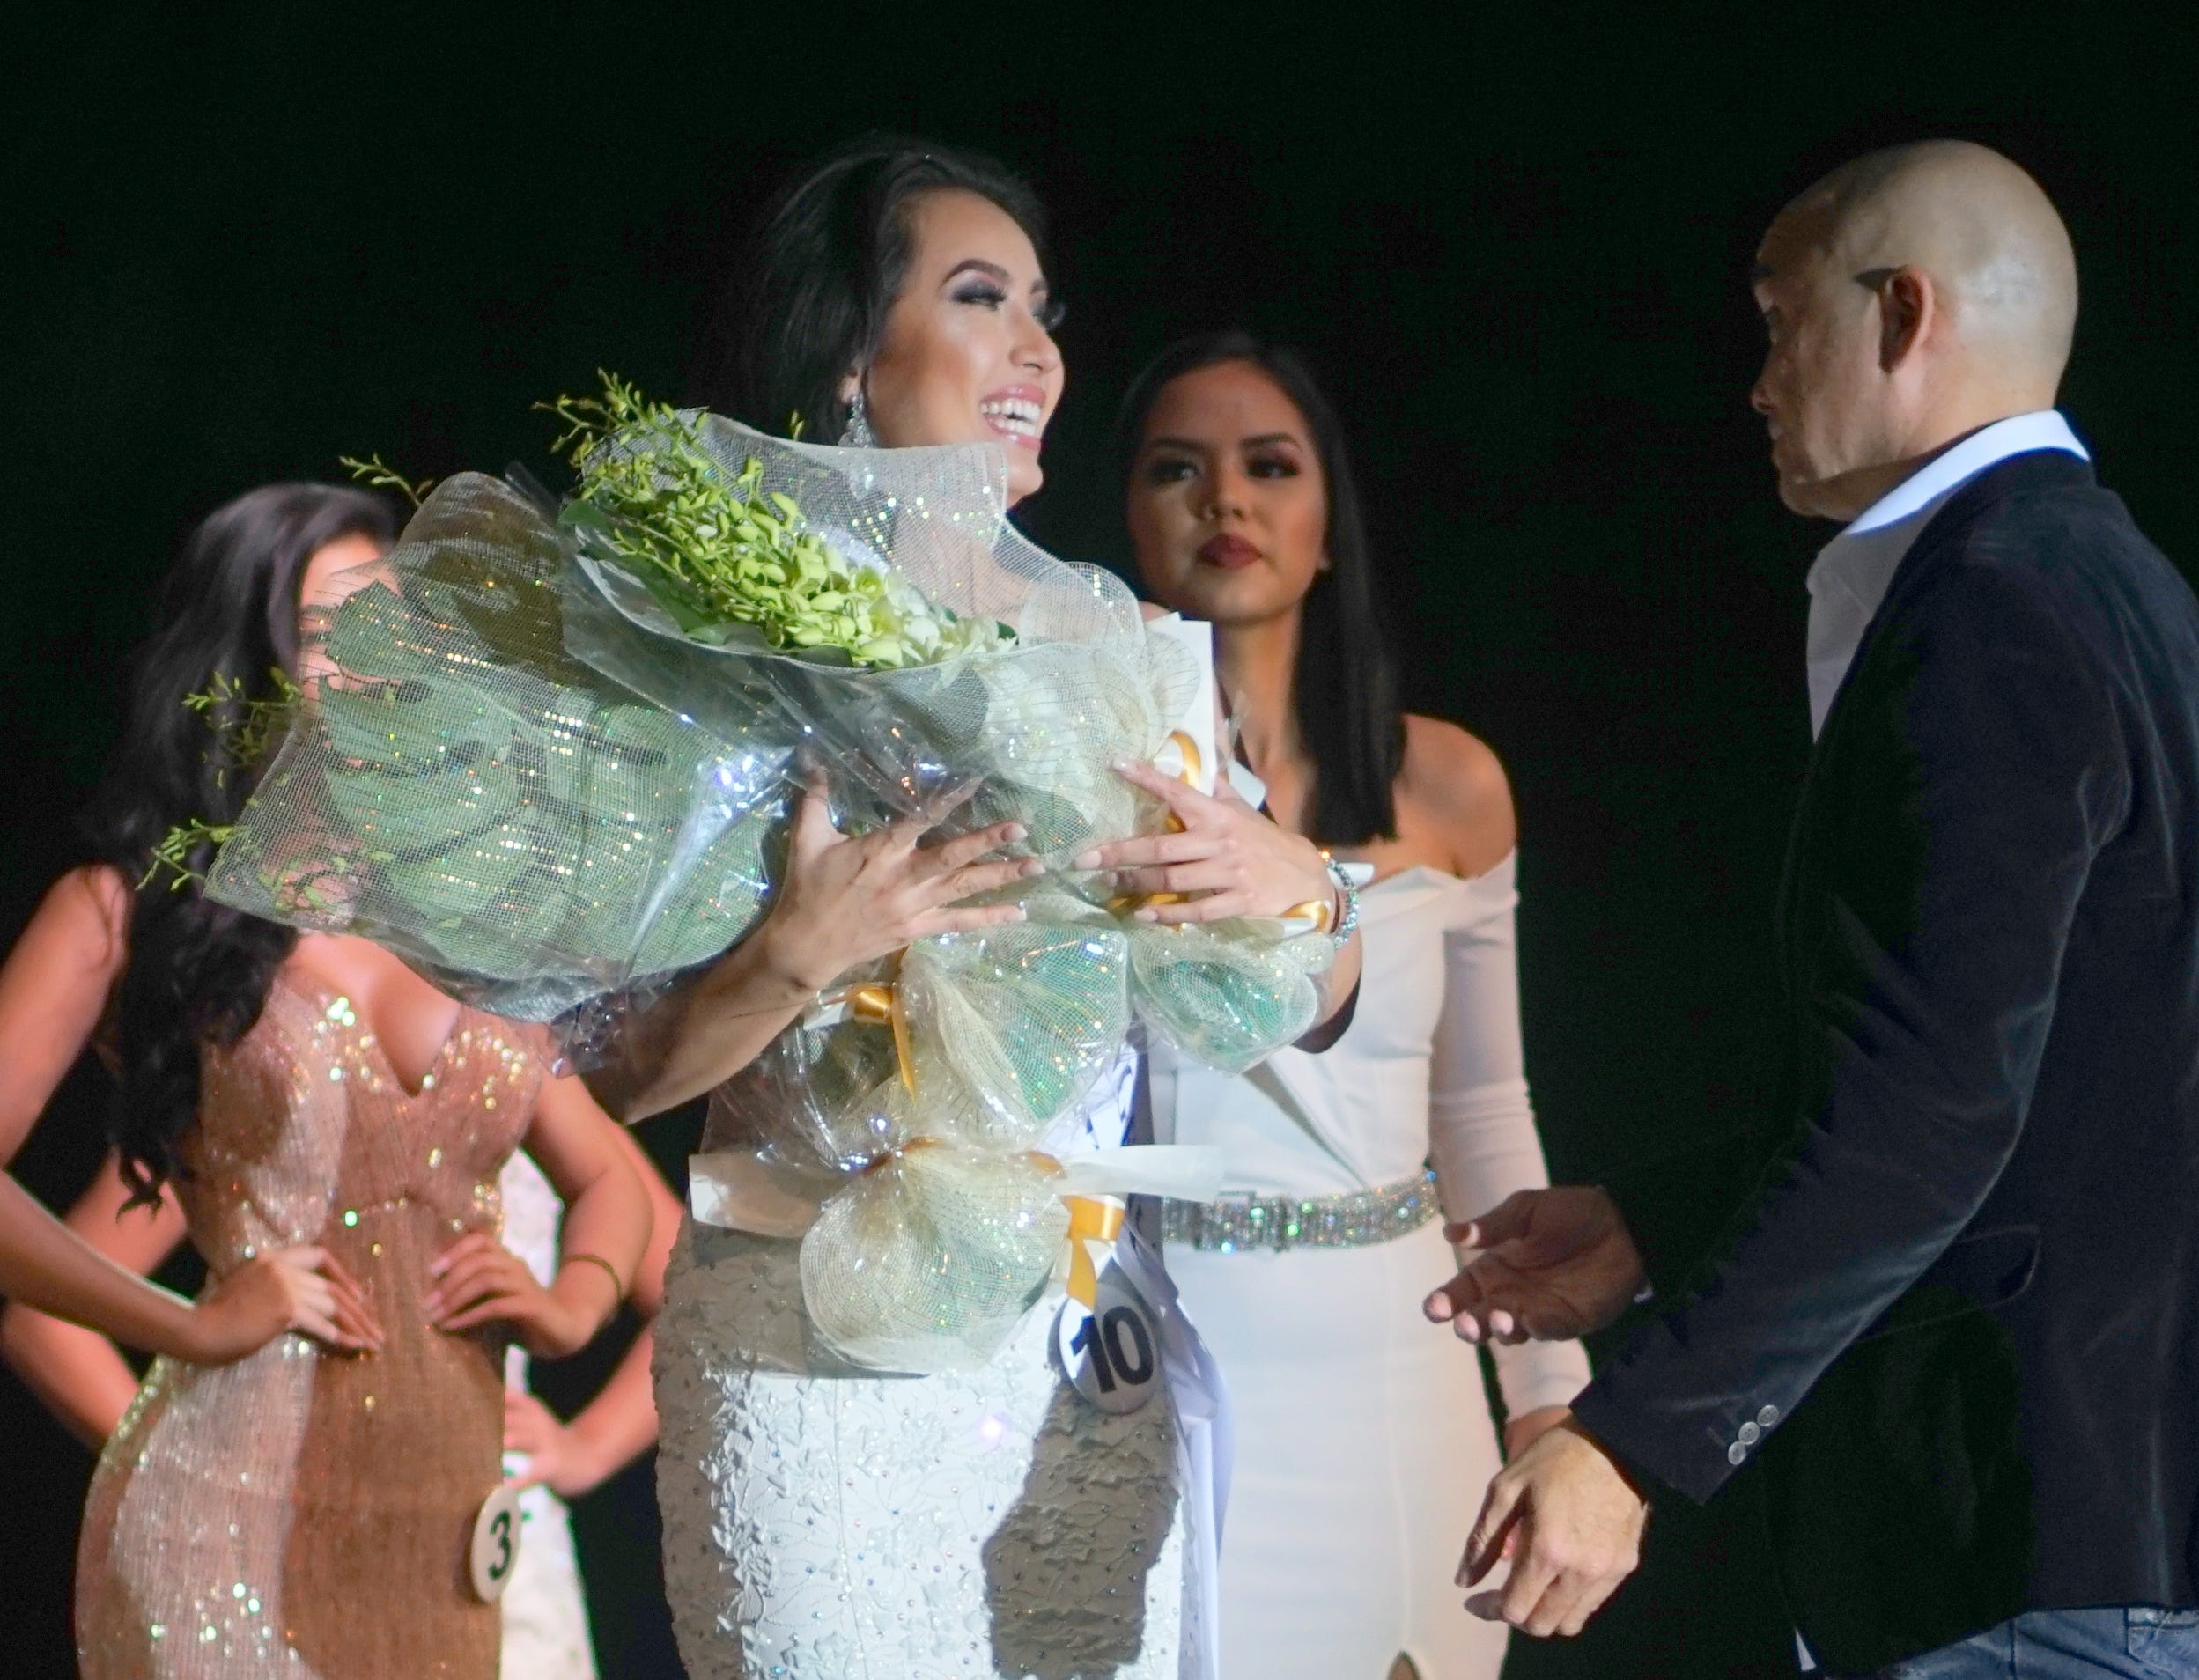 Kirsten Lydia Shelton Dahilig wins the Miss Congeniality award during the Miss Universe Guam 2018 pageant held at Sheraton Laguna Guam Resort.